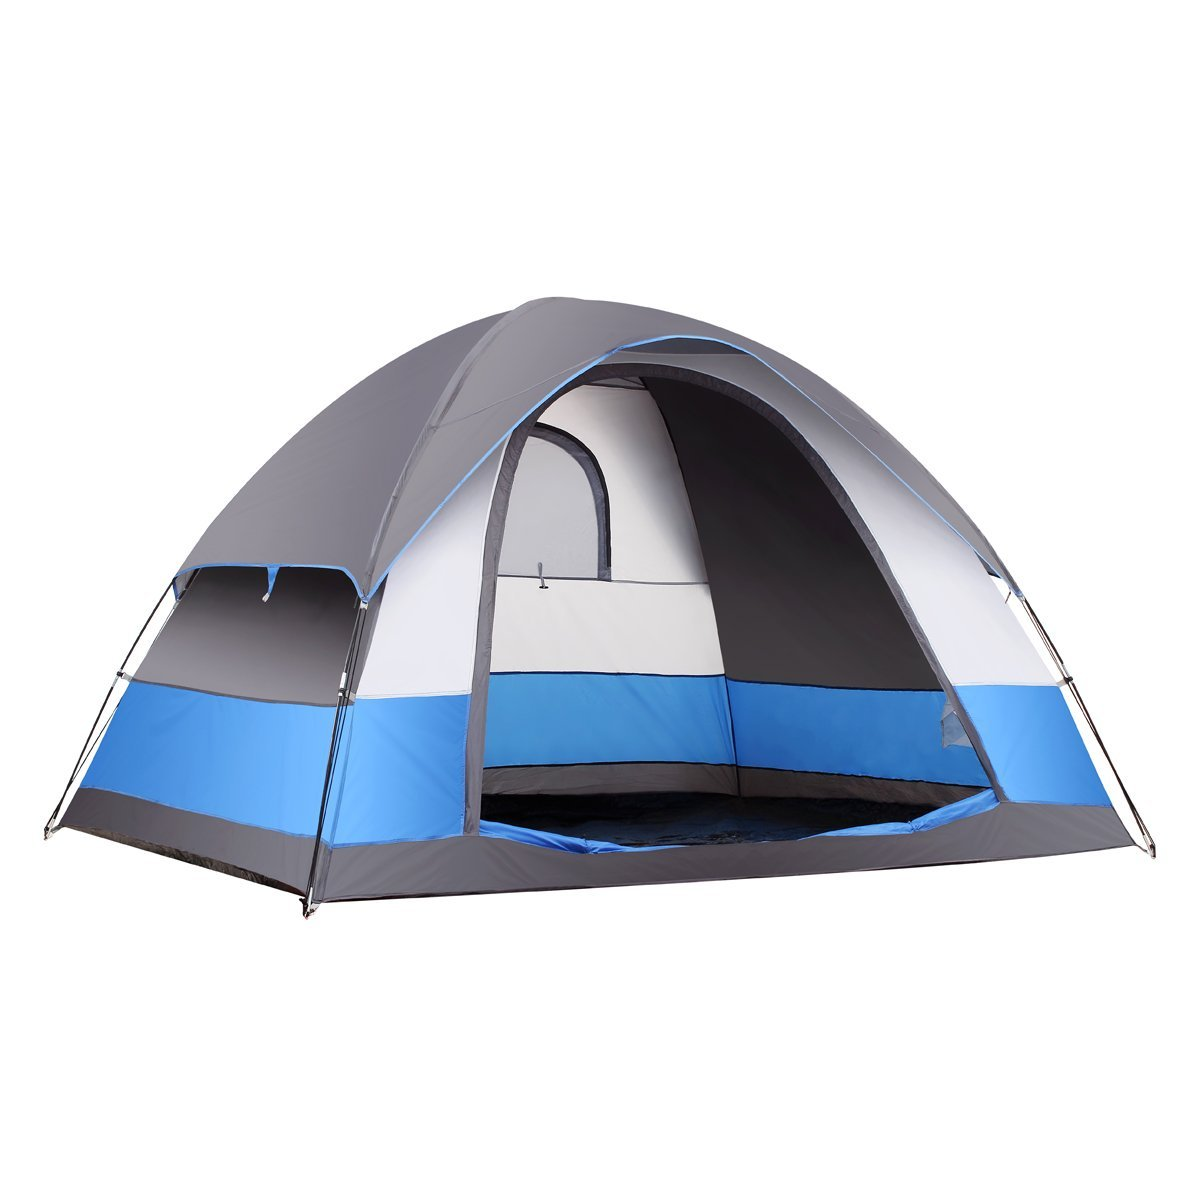 SEMOO Water Resistant 5 Person 3-Season Lightweight Family Dome Tent for Camping